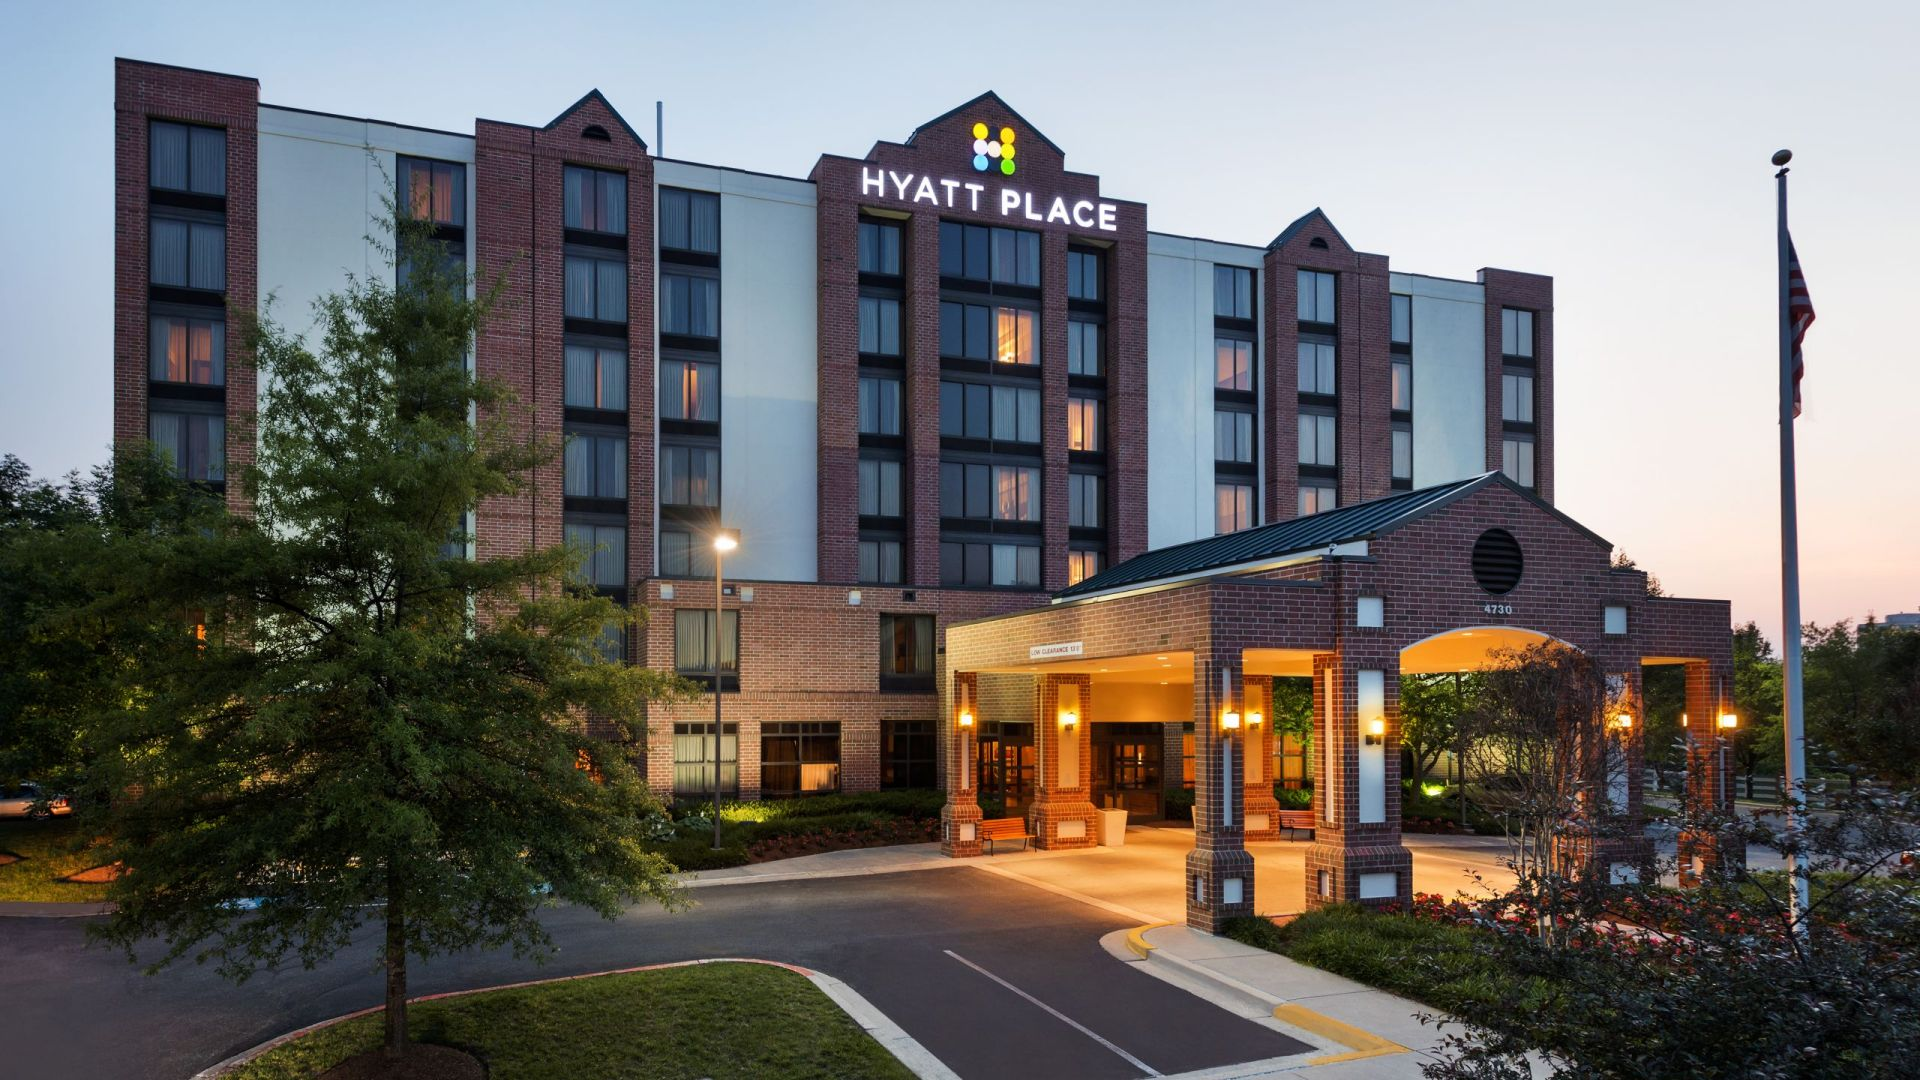 Hyatt Place Baltimore Exterior